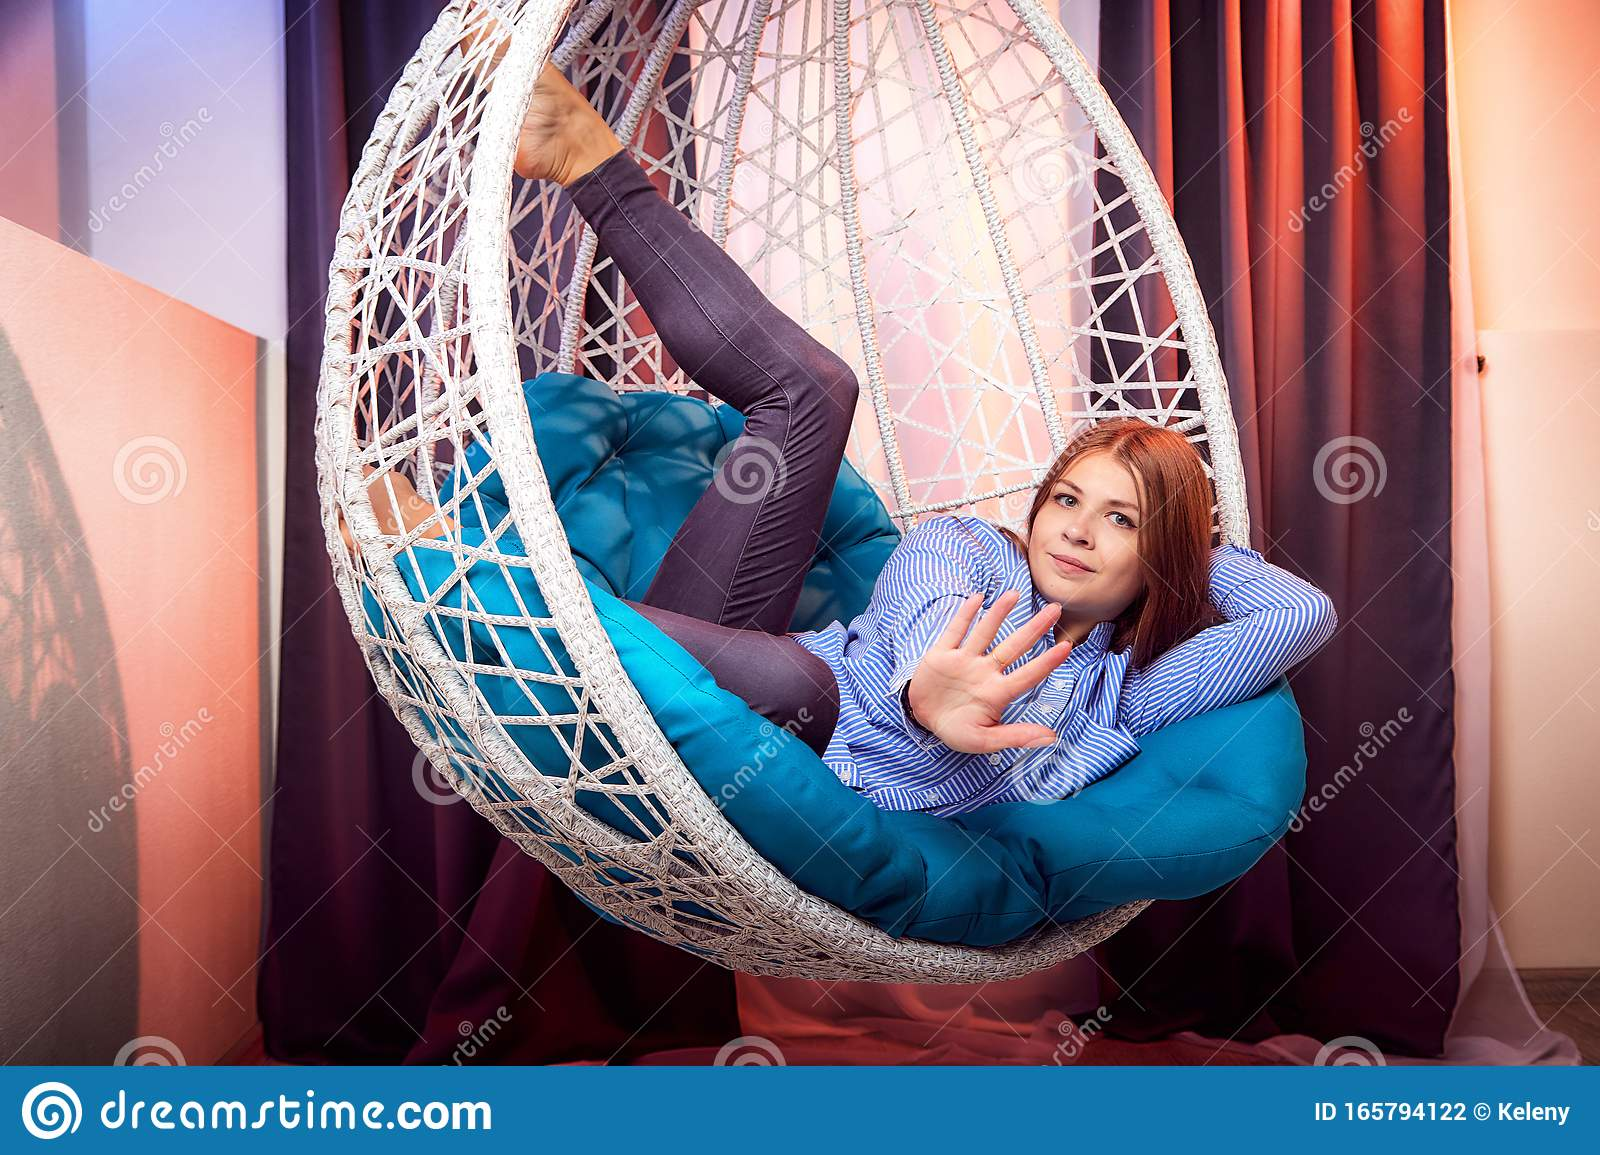 https www dreamstime com beautiful brunette girl blue shirt white wicker hanging chair pillow room curtains model posing photoshoot image165794122